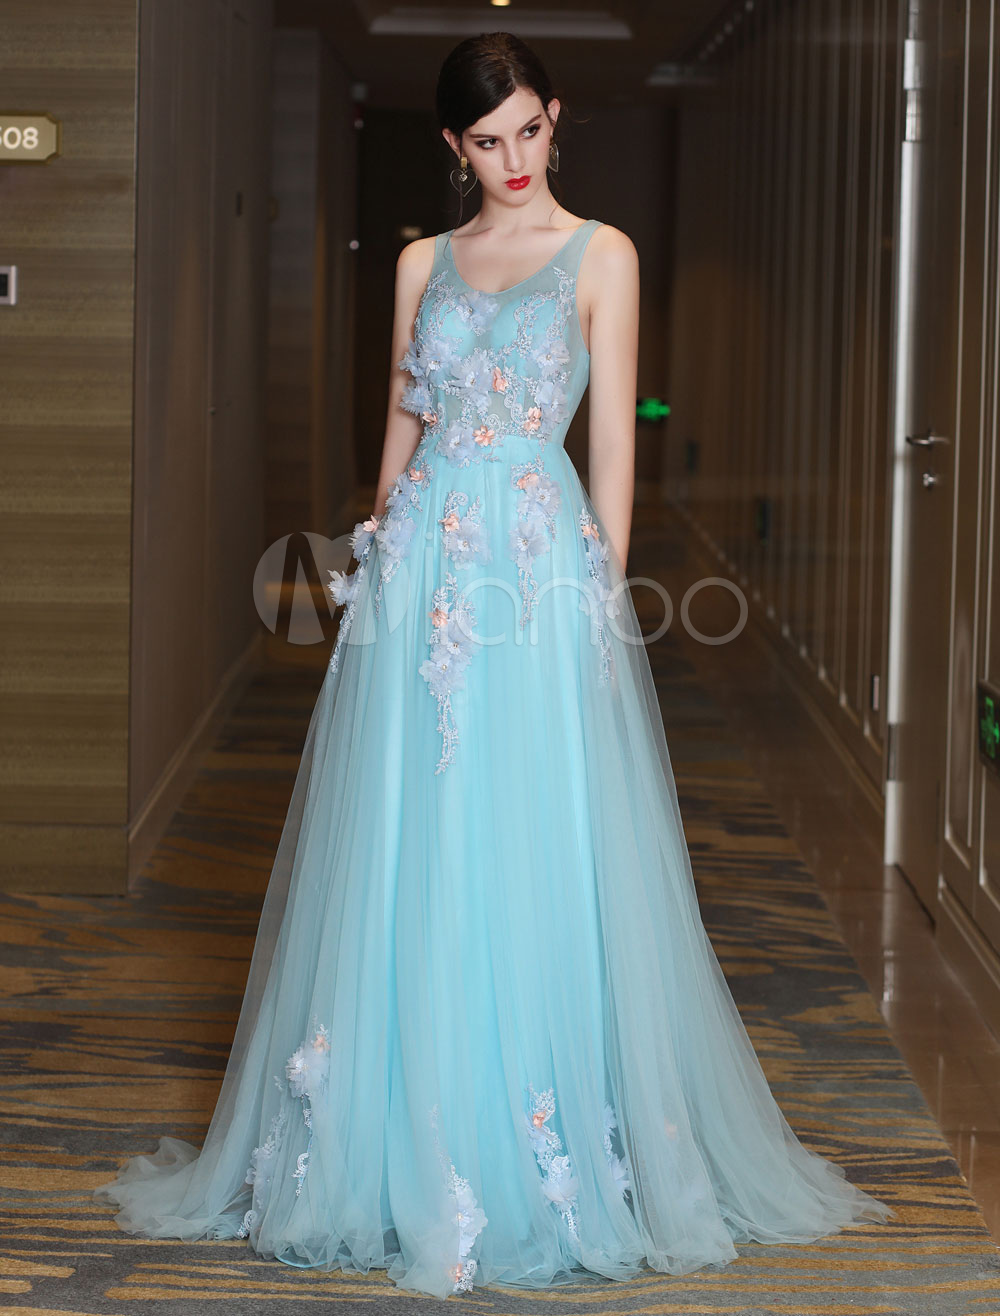 c1081e6cbd5 Luxury Prom Dresses Long Two Piece Tulle Lace Flowers Applique Beading  Pastel Blue Capelet Formal Party ...